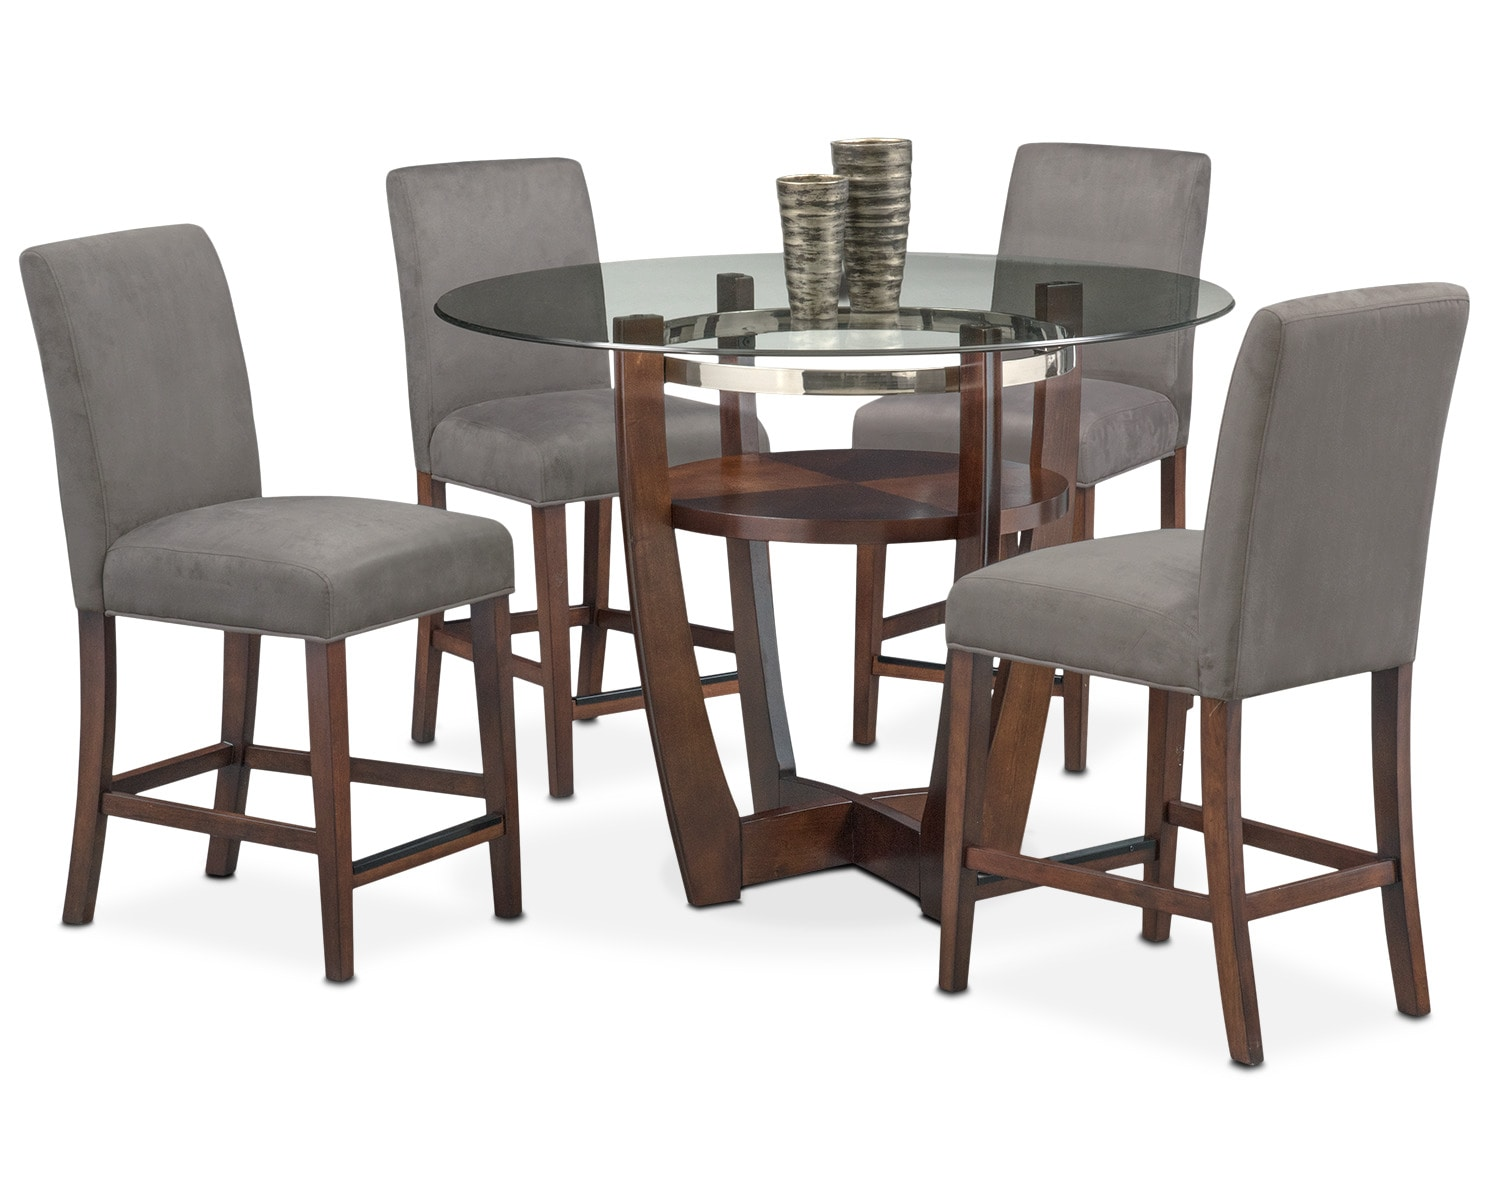 The Alcove Counter-Height Collection - Gray and Merlot